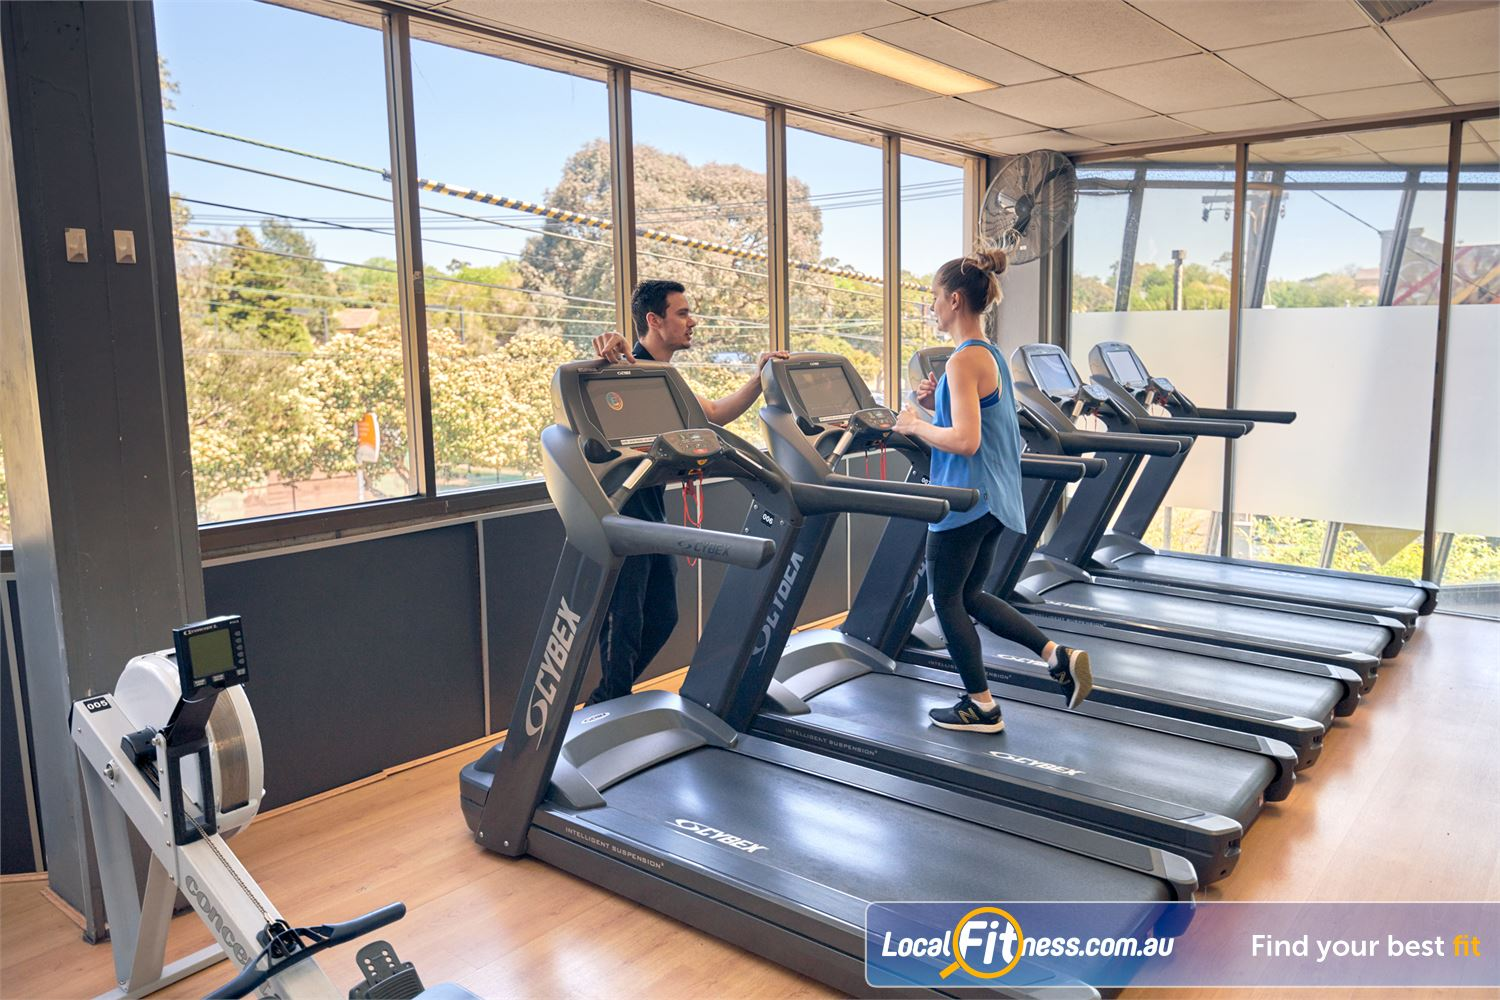 Goodlife Health Clubs Near Surrey Hills Our cardio area provides scenic views of the Balwyn streets.